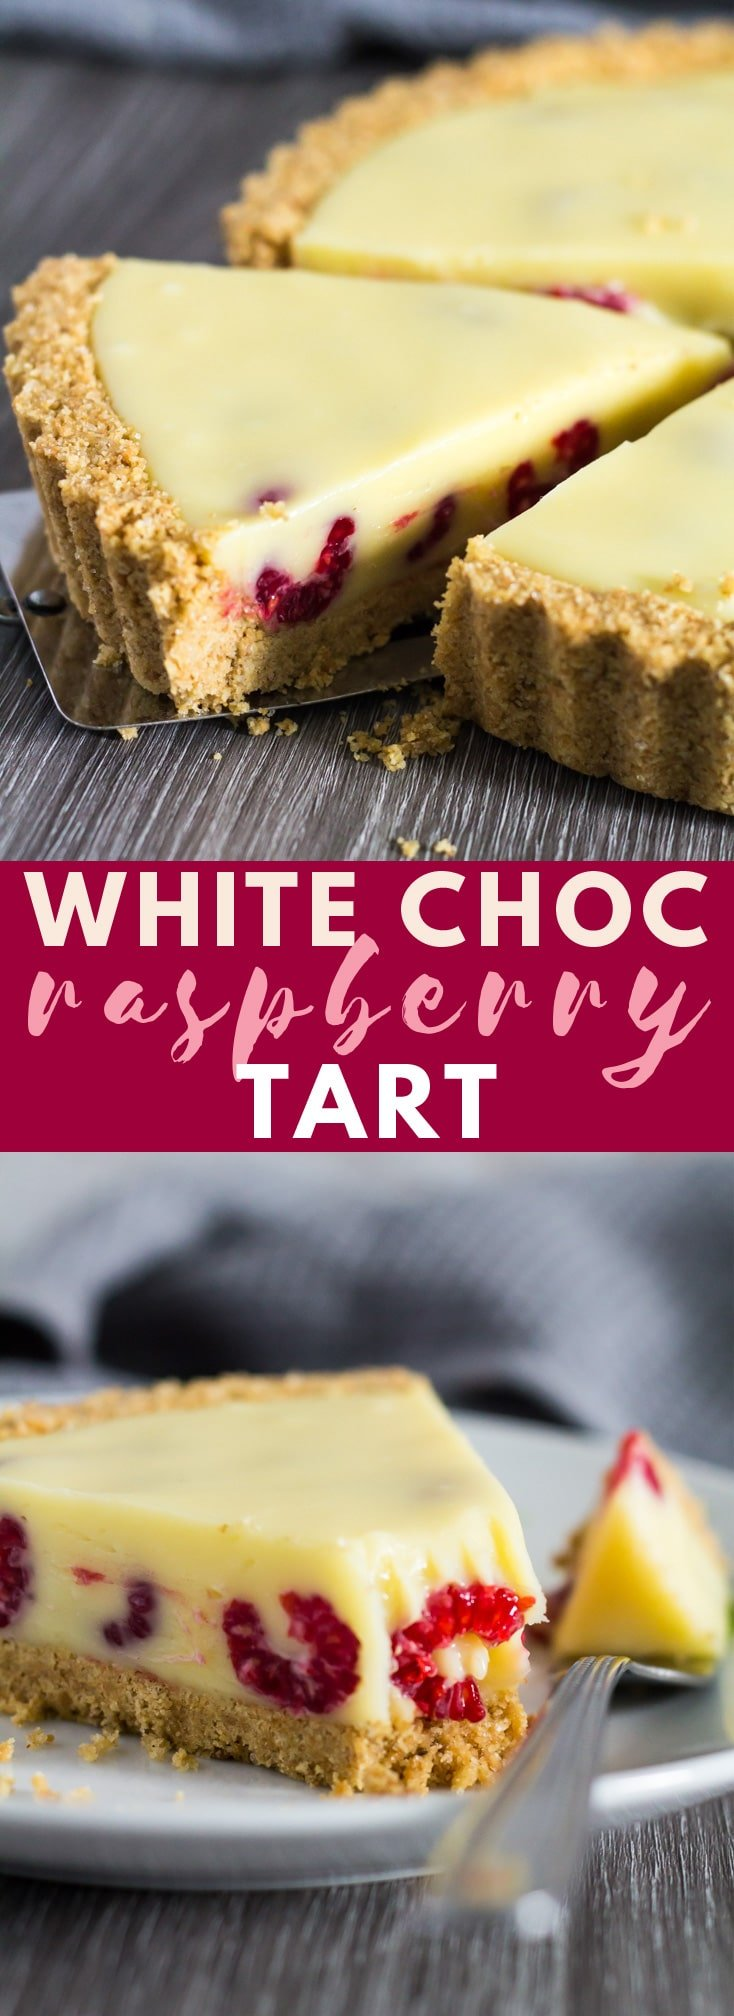 White Chocolate Raspberry Tart - A deliciously rich and creamy no-bake white chocolate tart recipe that is stuffed full of fresh raspberries, and has a sweet digestive biscuit crust!